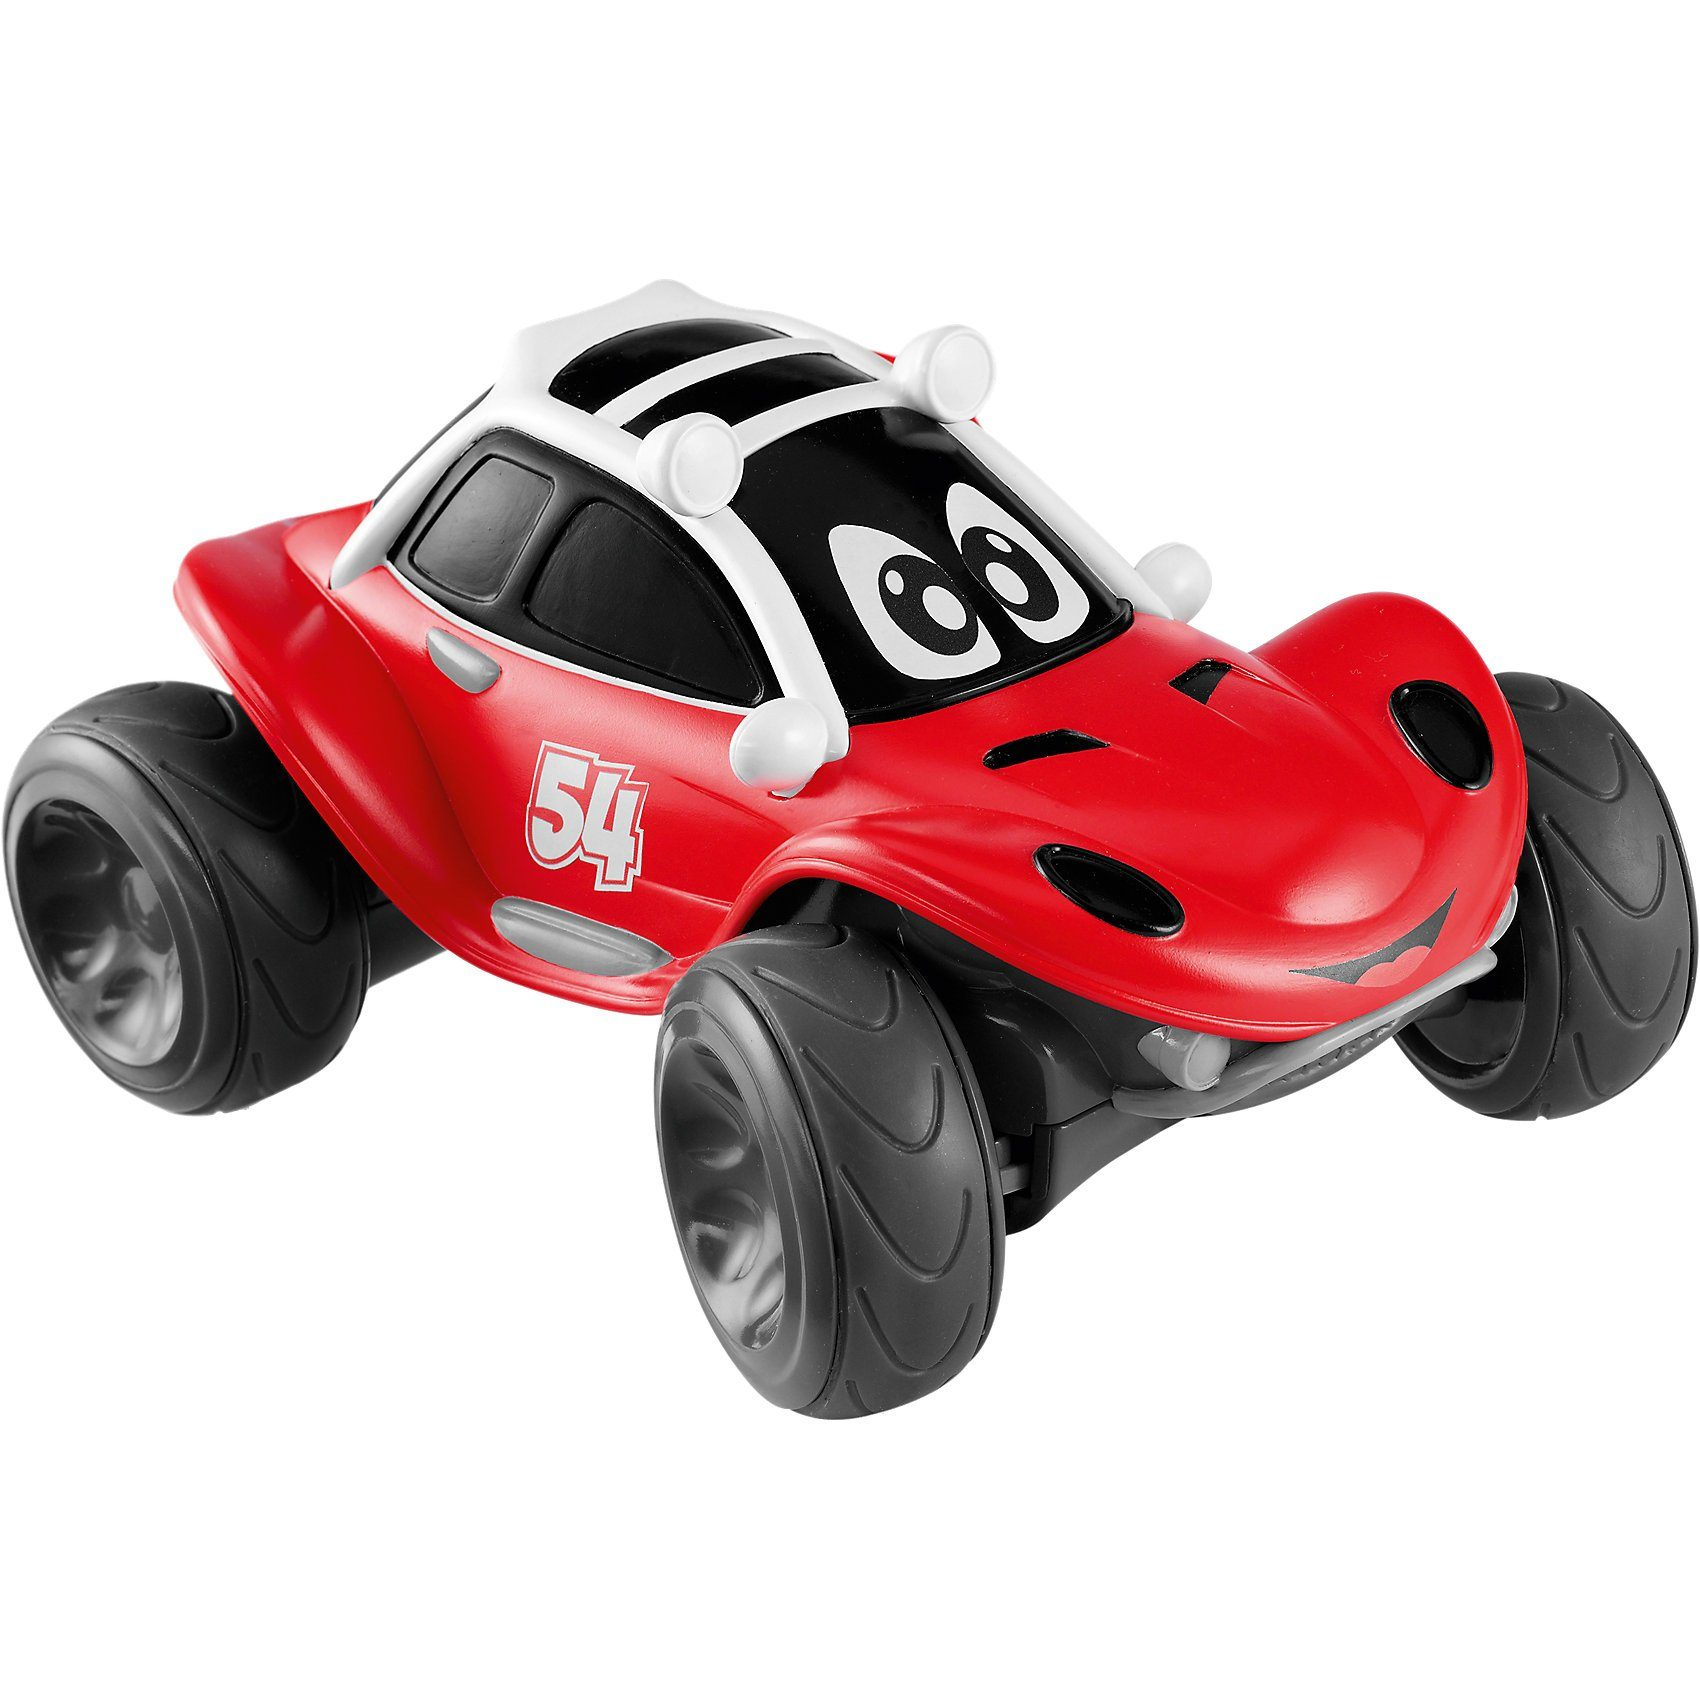 Chicco Bobby Buggy - Ferngesteuertes Auto